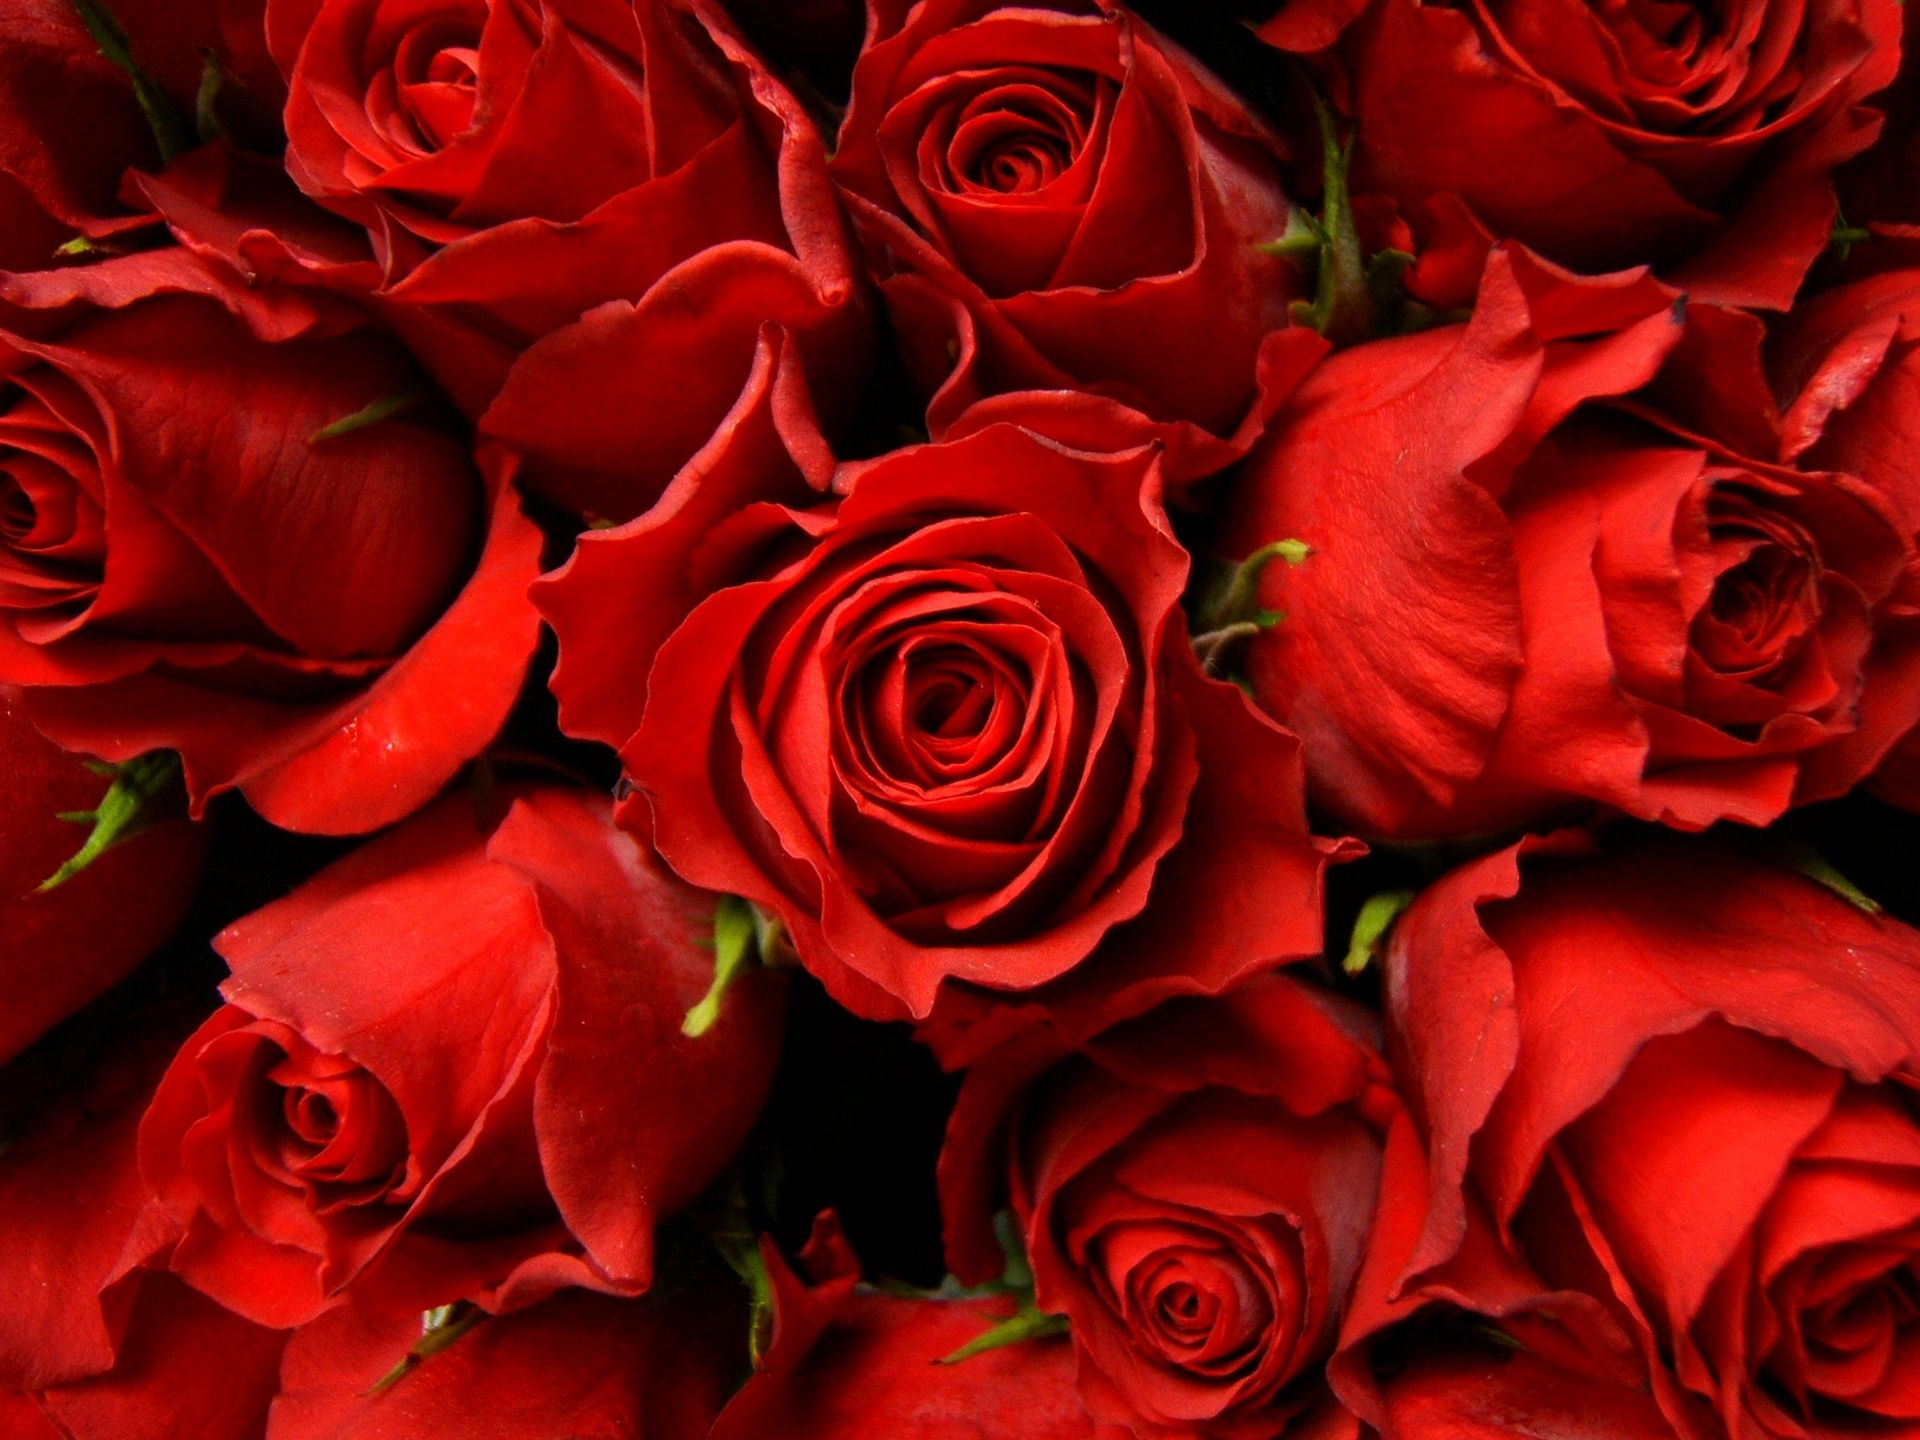 Red roses wallpaper - Red Roses Picture Wallpaper High Definition High Quality